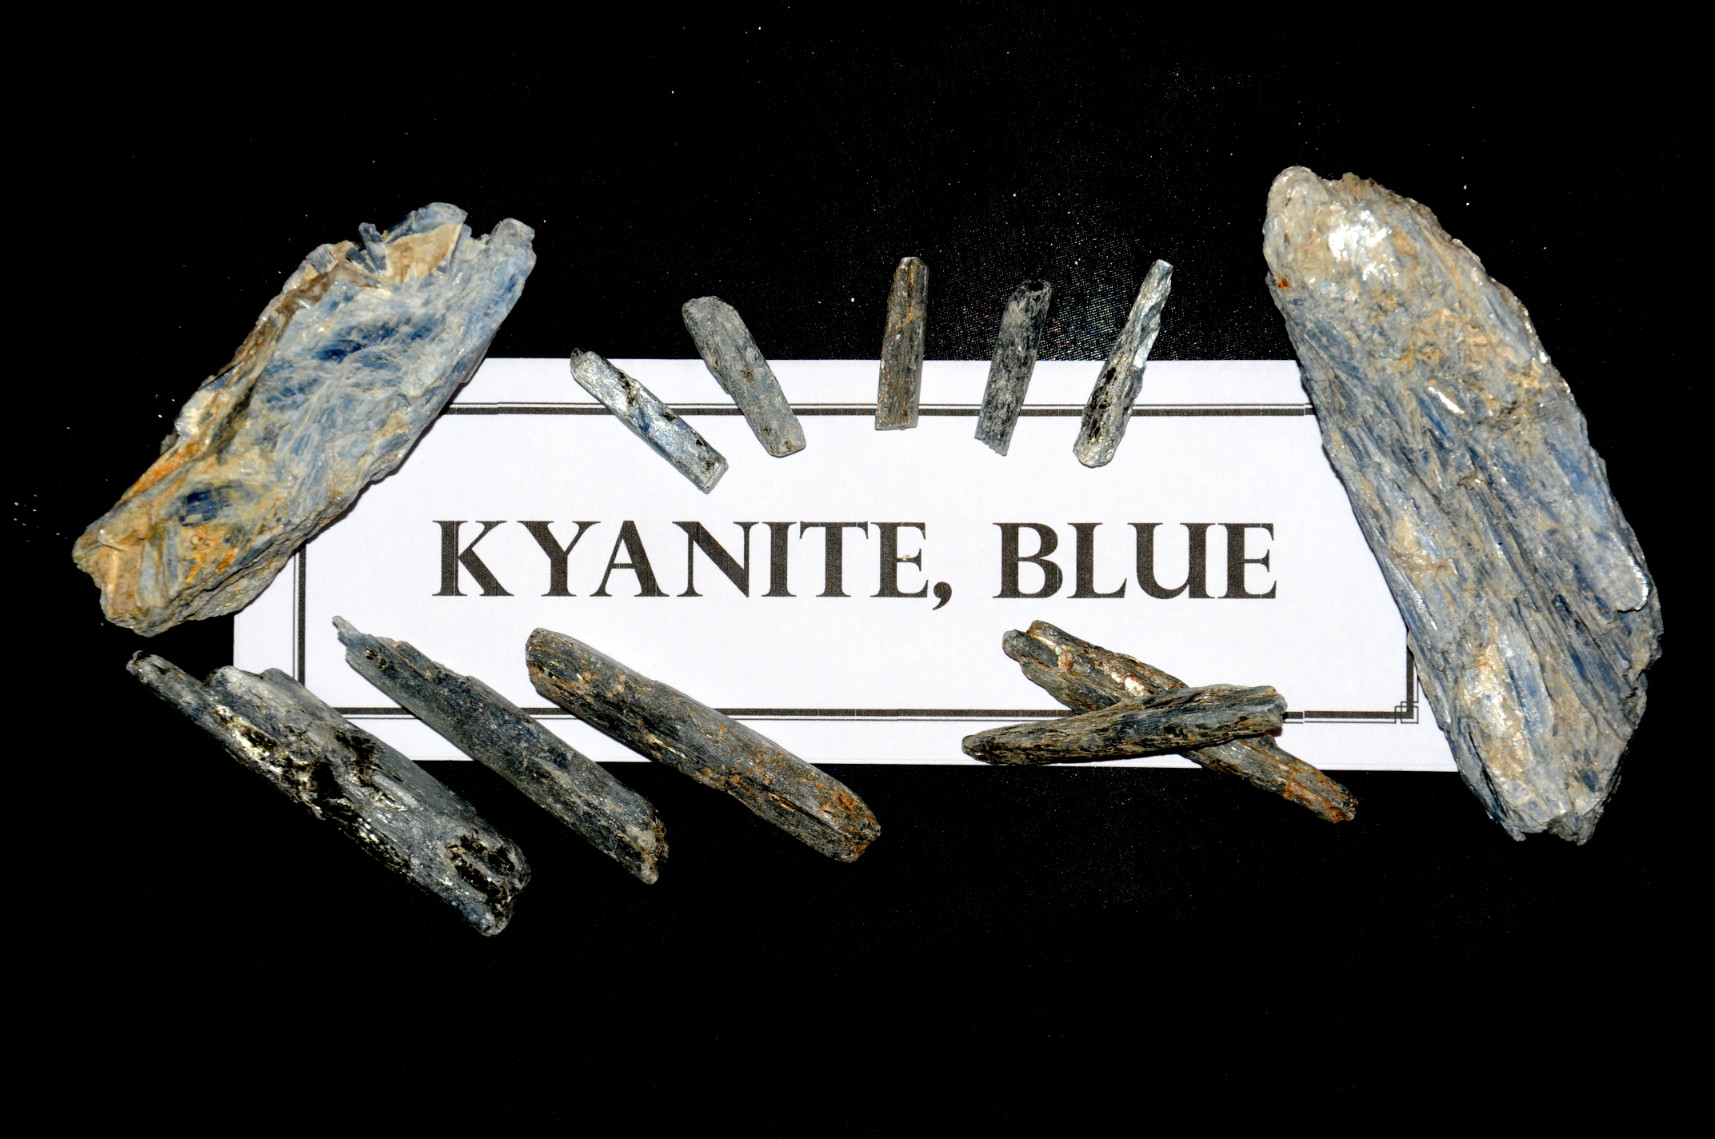 Kyanite, Blue